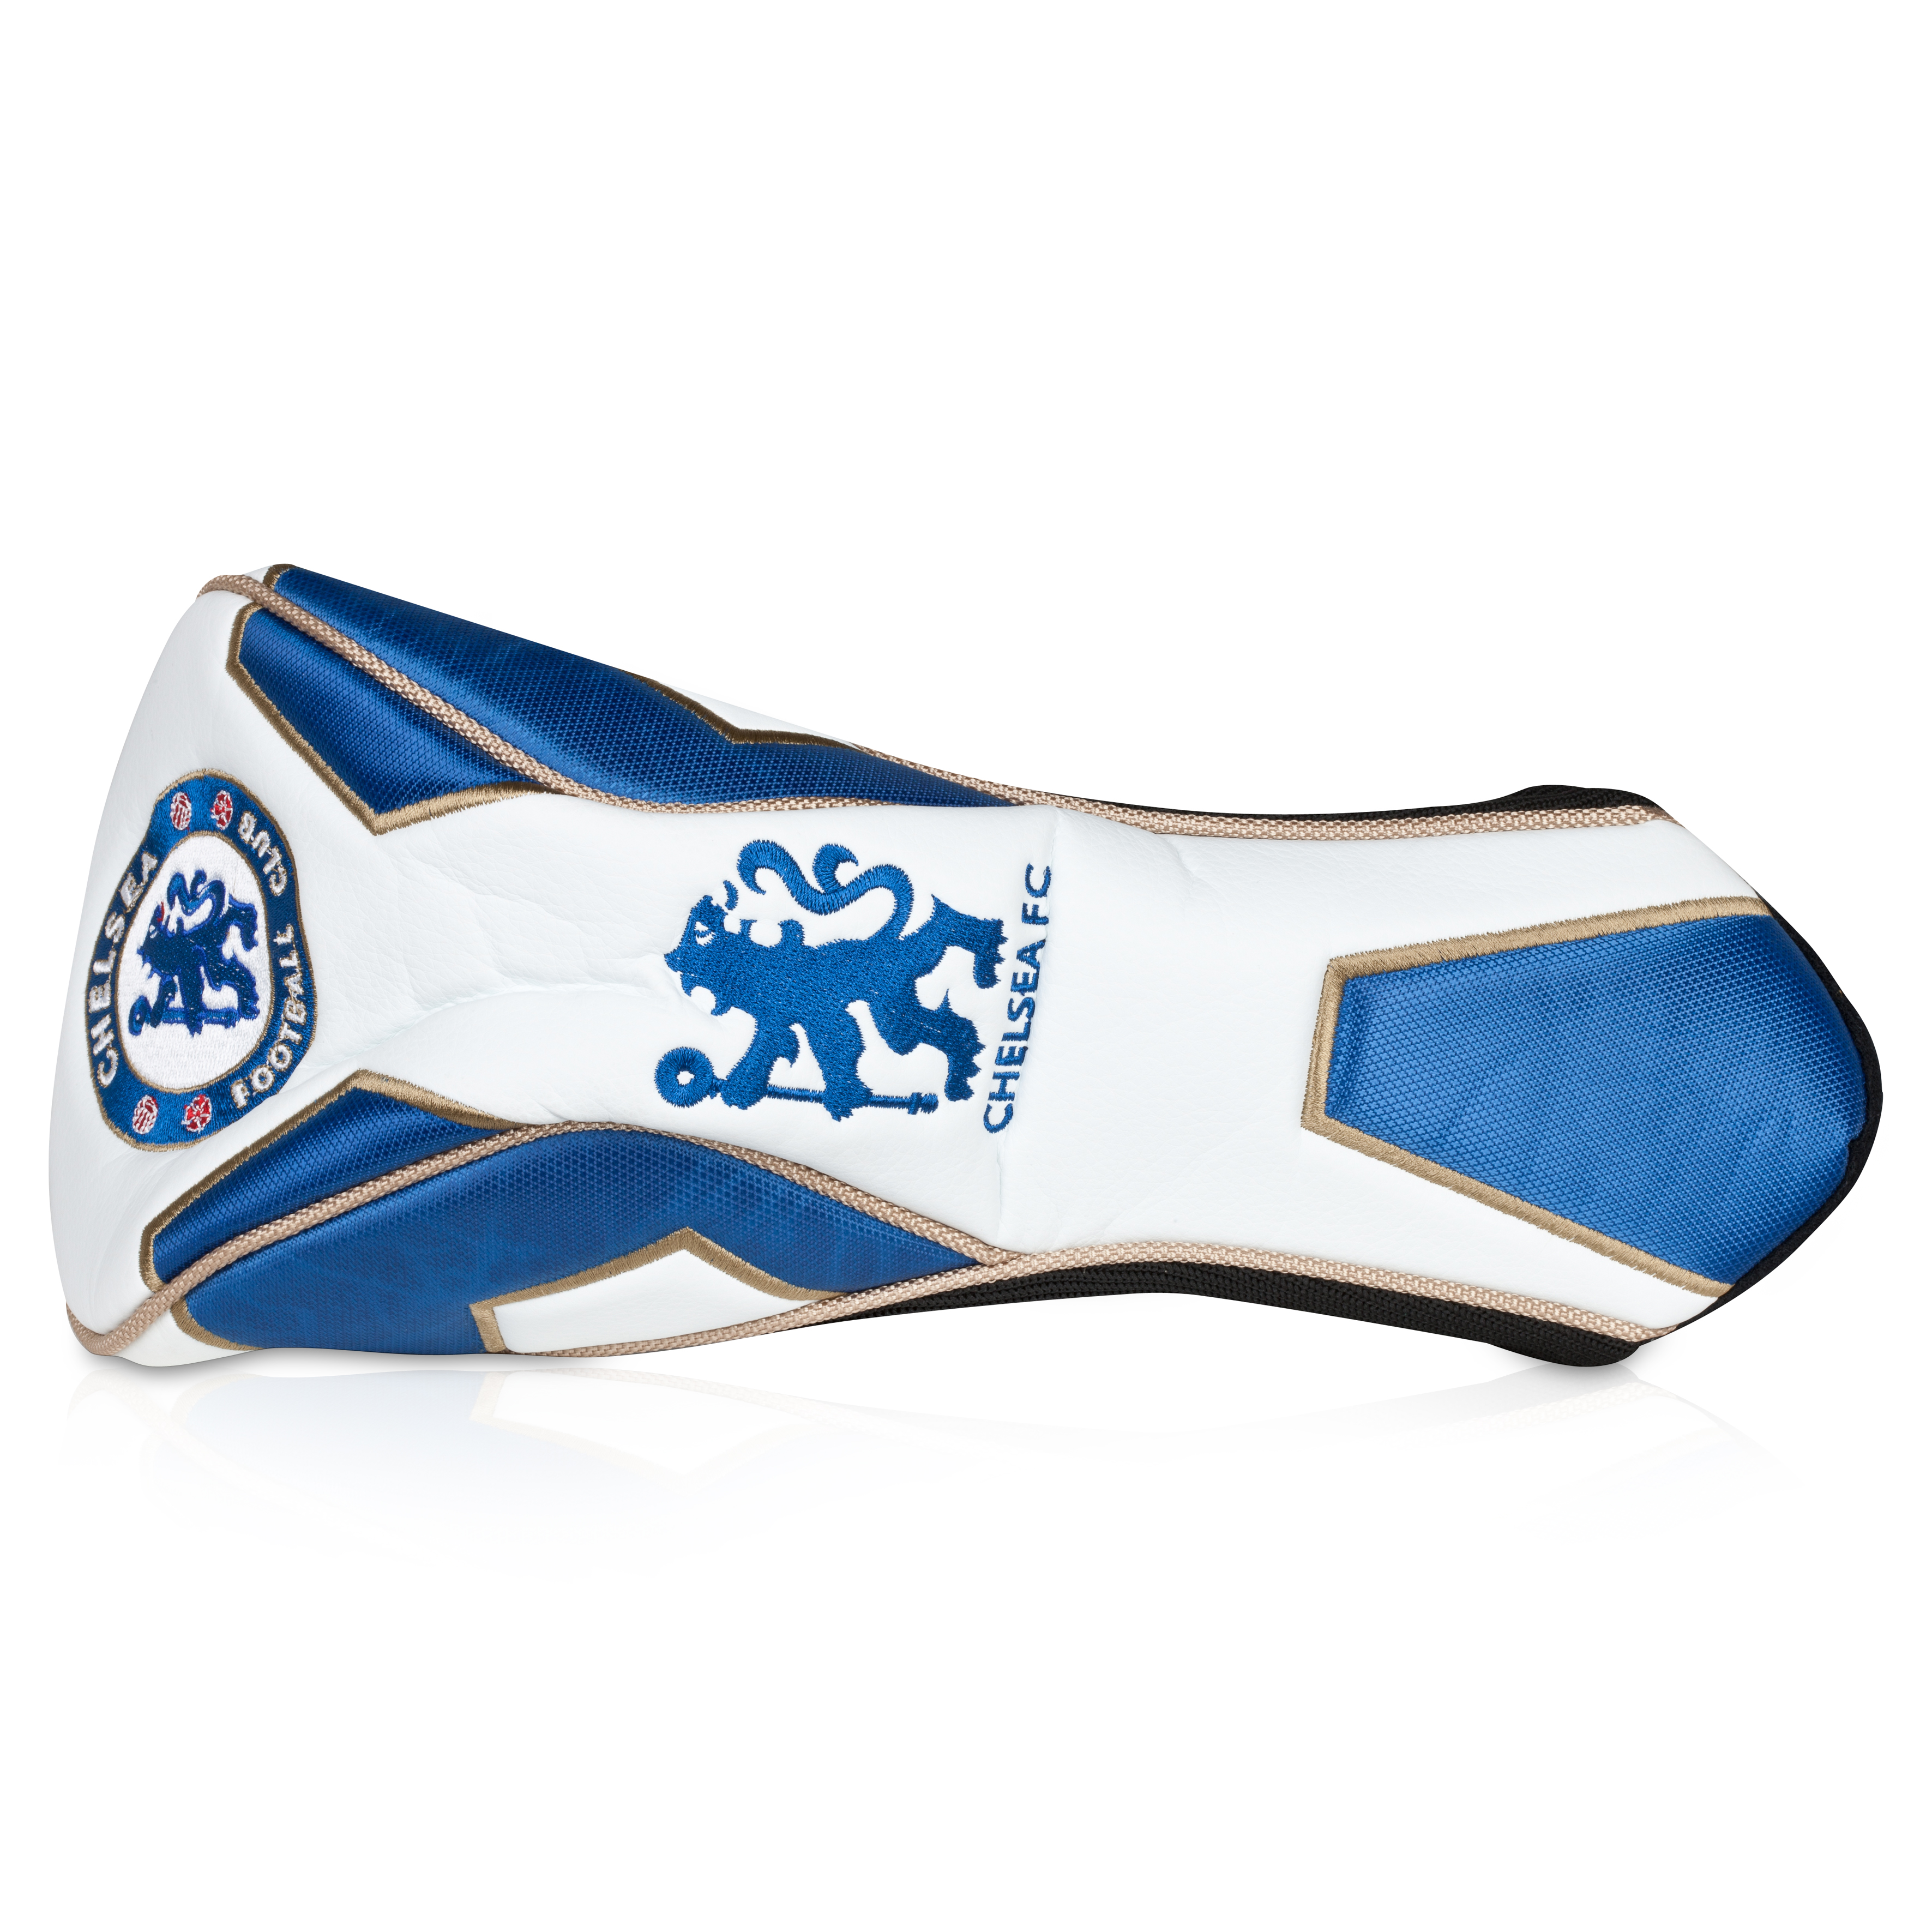 Chelsea Executive Driver Headcover